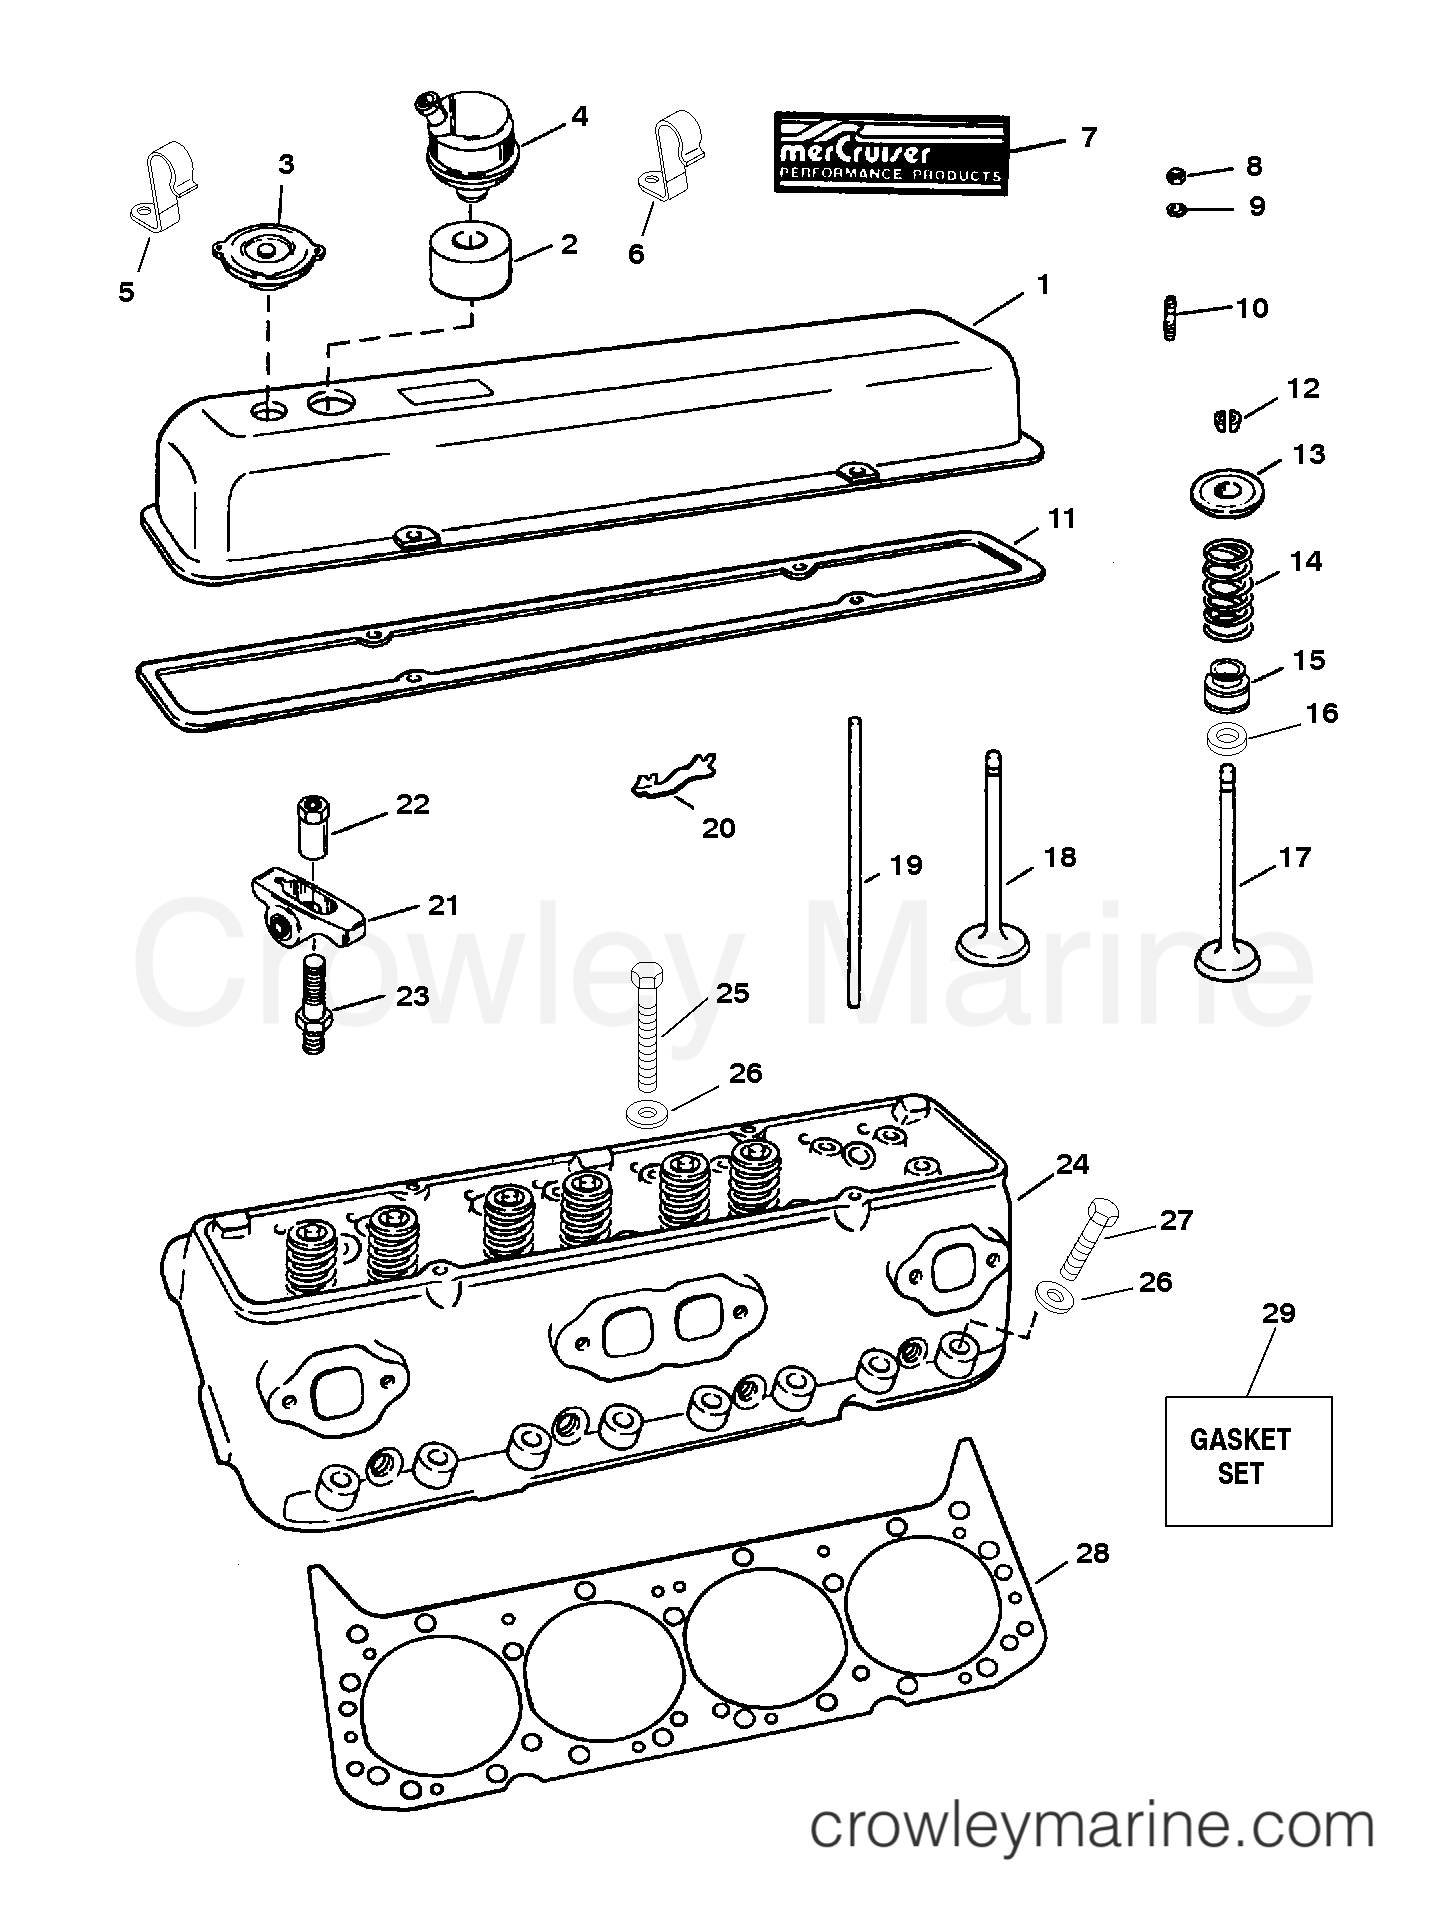 1992 Mercruiser Race Sterndrive 500 [III/IV] - 4500740EH CYLINDER HEAD/ROCKER COVER (SERIAL # 0F348987 AND DOWN) section